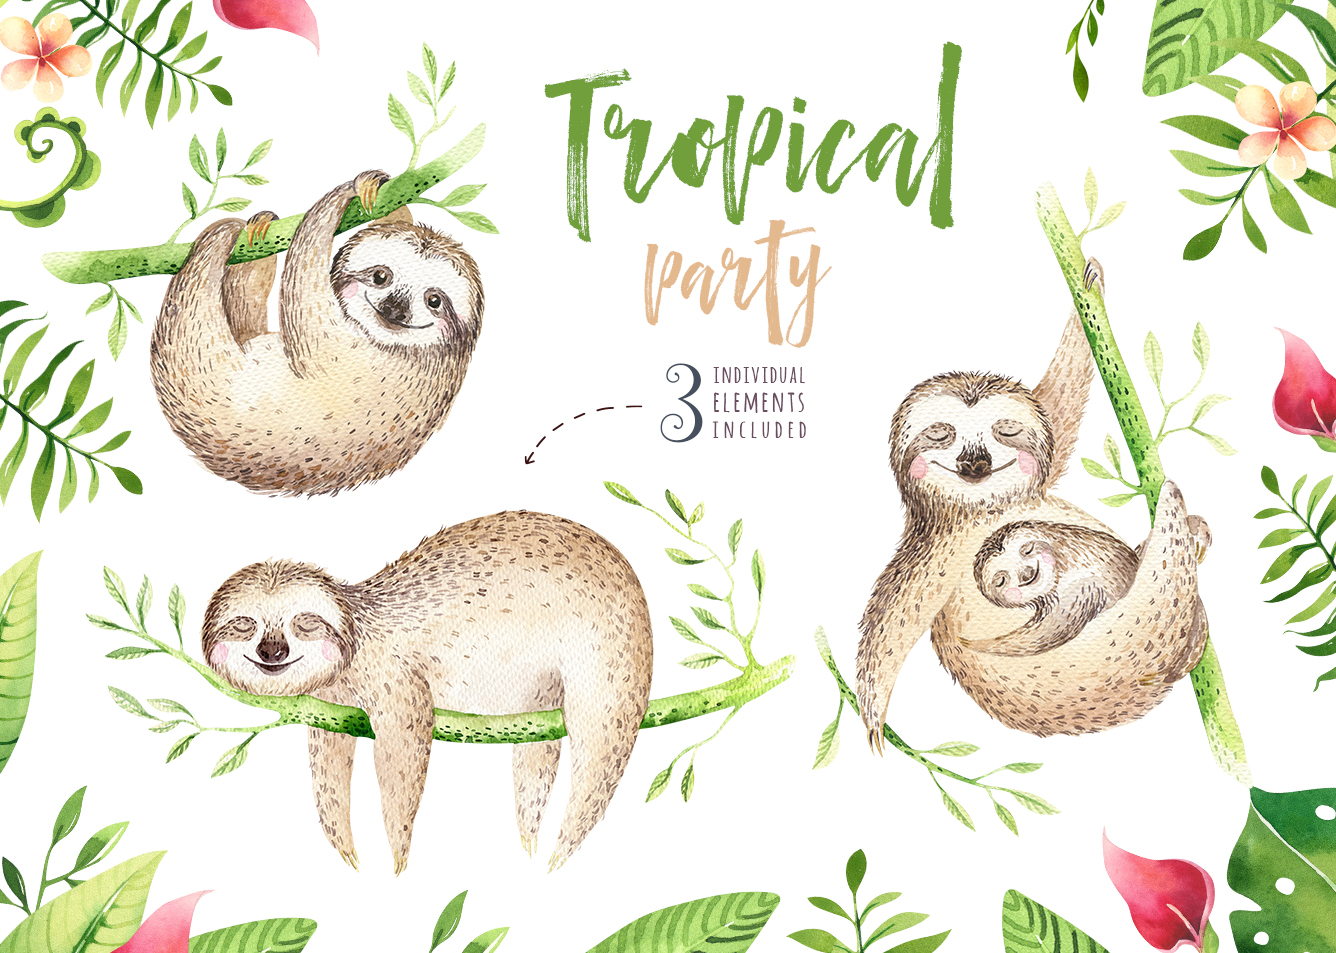 Tropical party III.Sloth collection example image 7